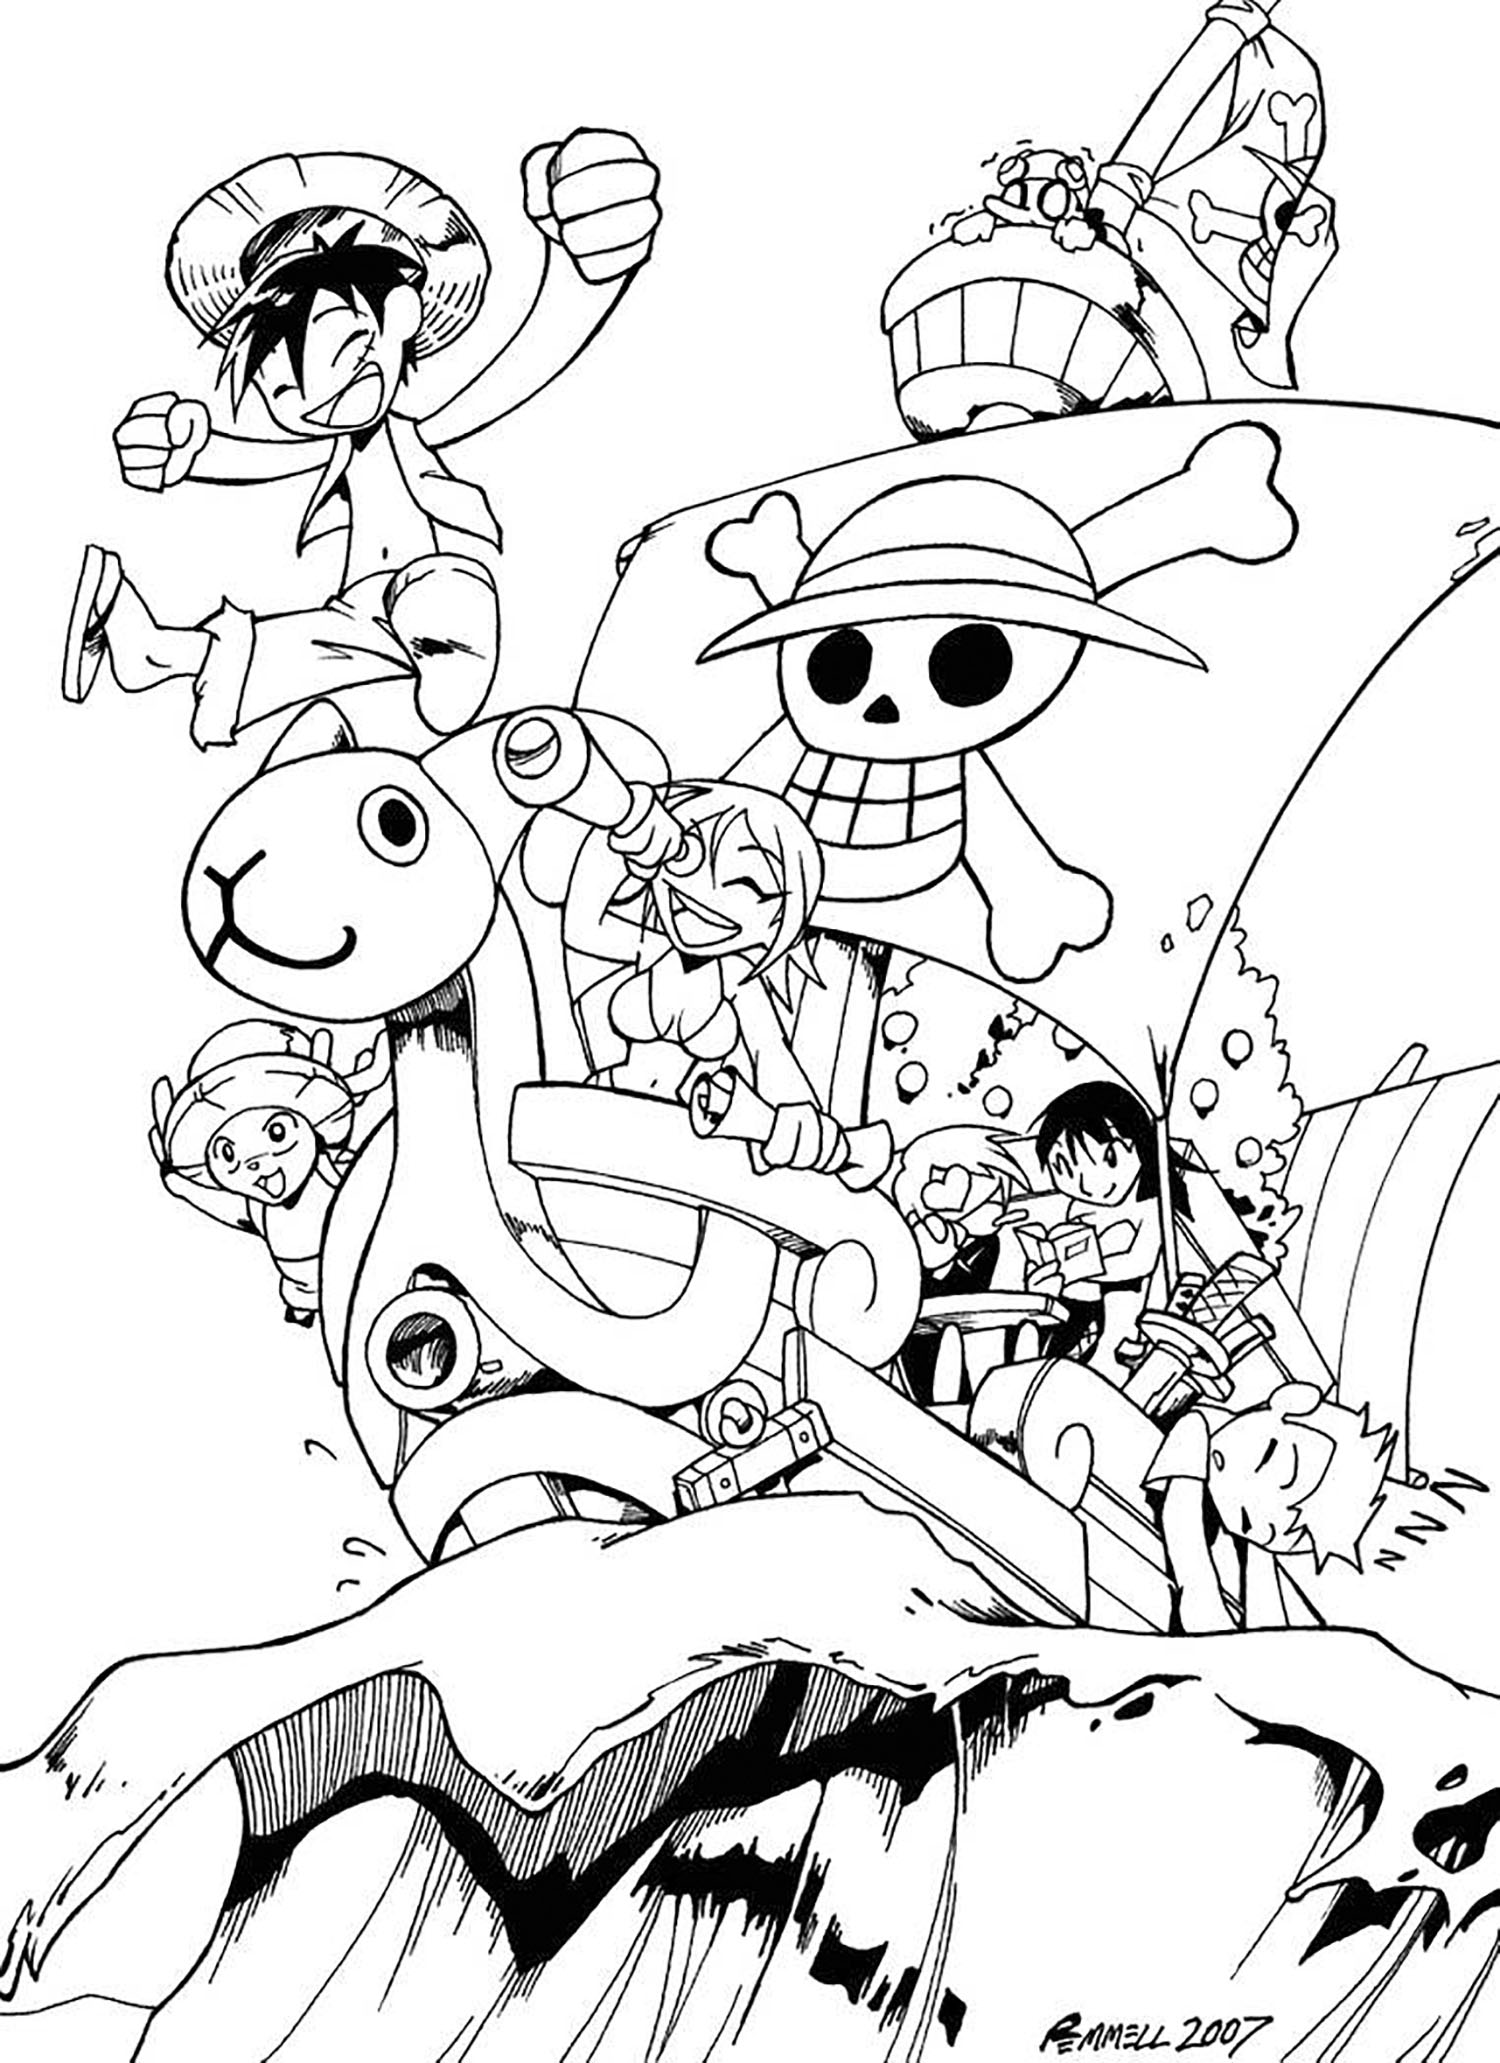 Luffy in One Piece 2